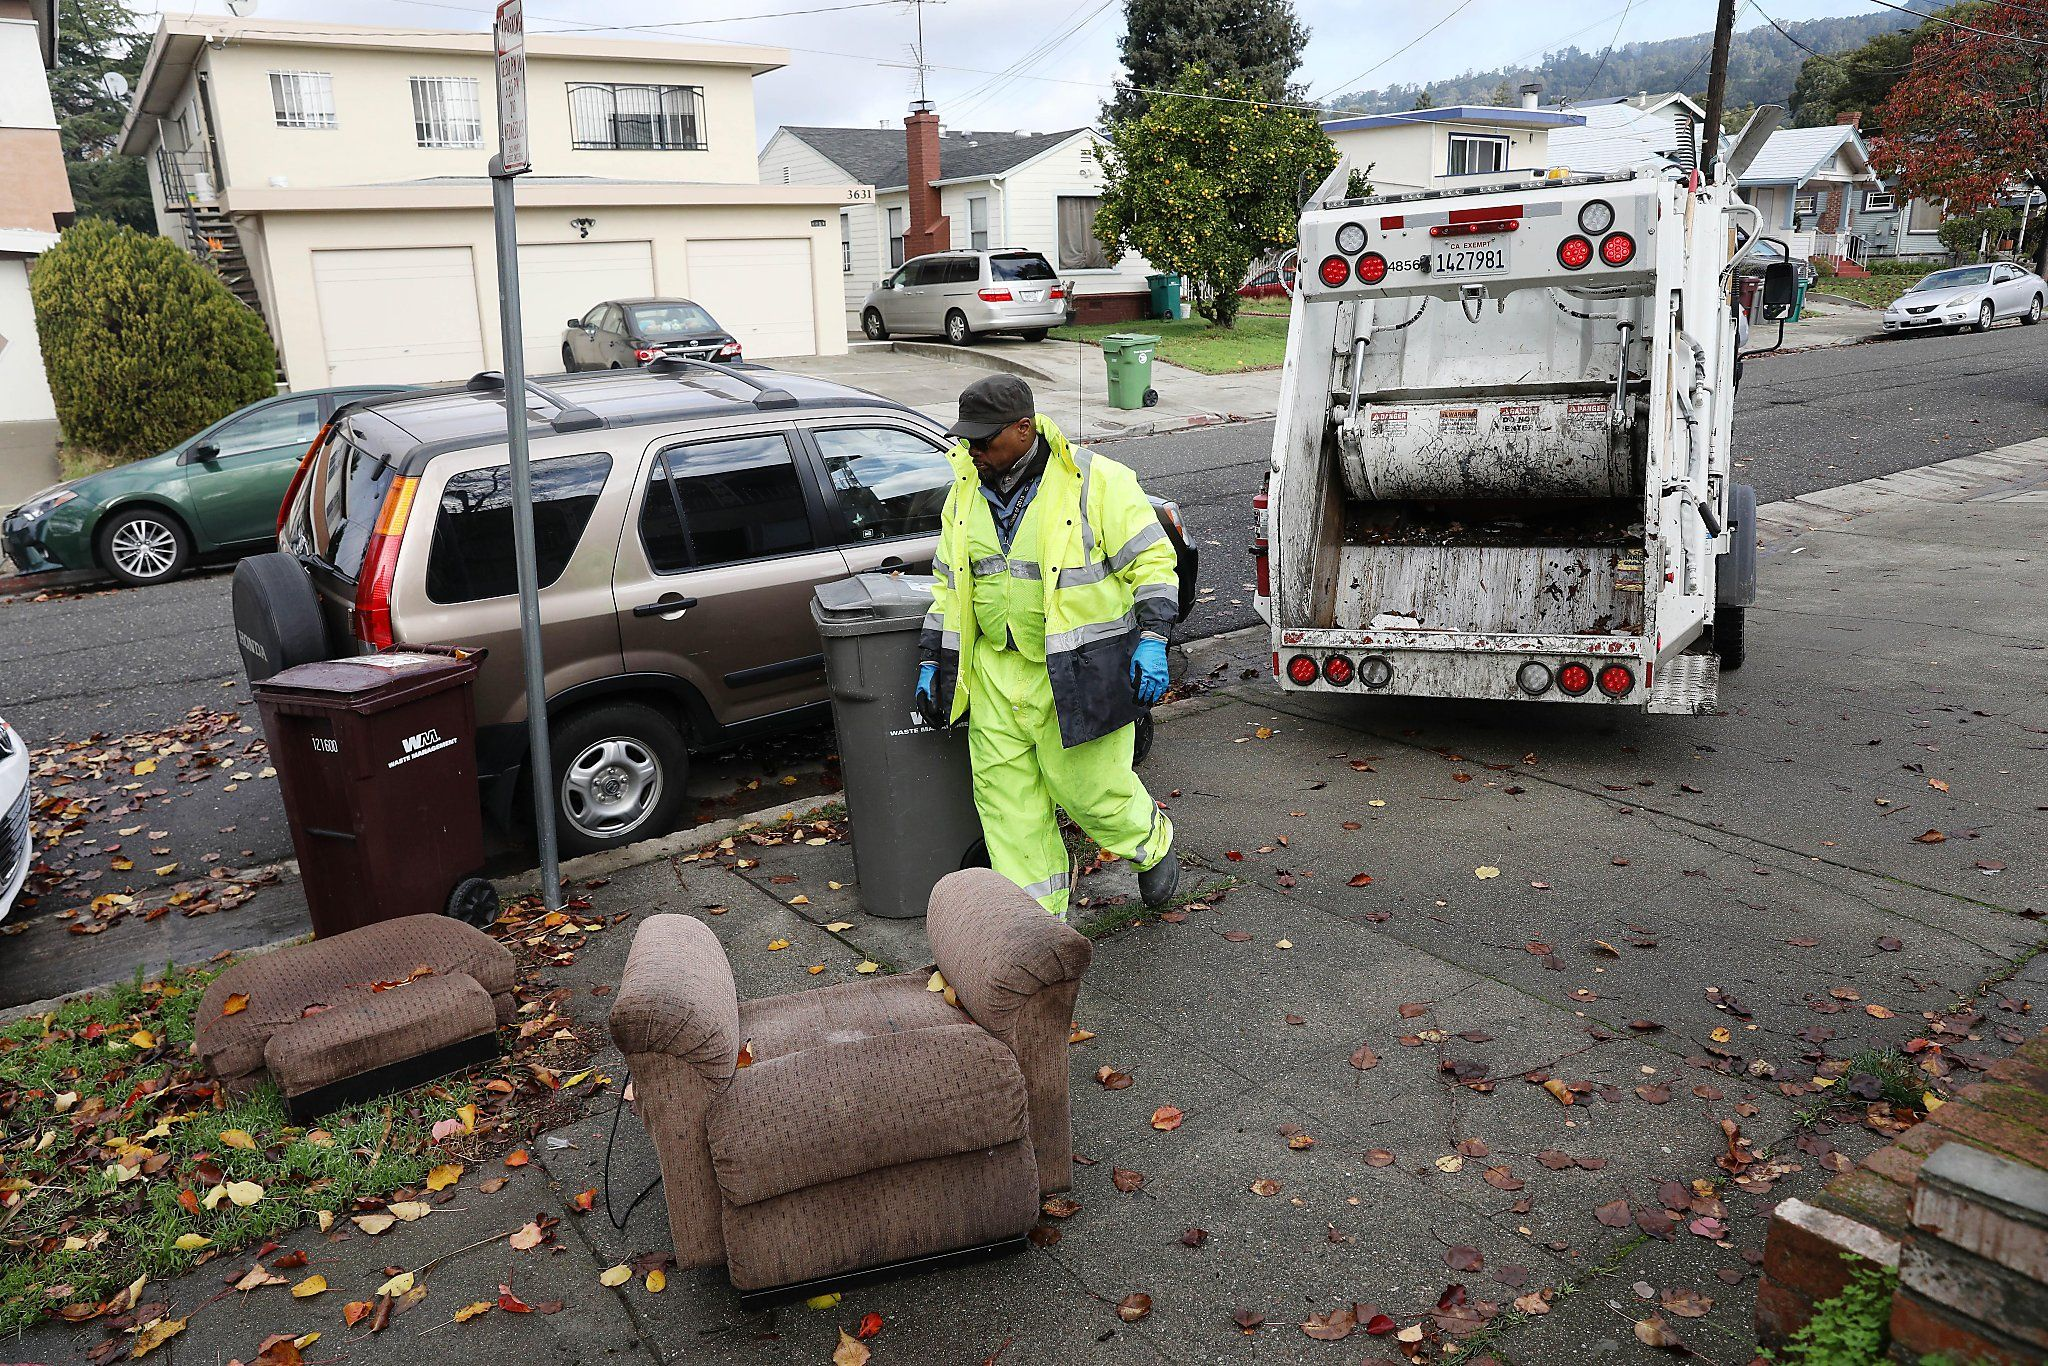 Oakland's streets are getting trashier, but new program sees